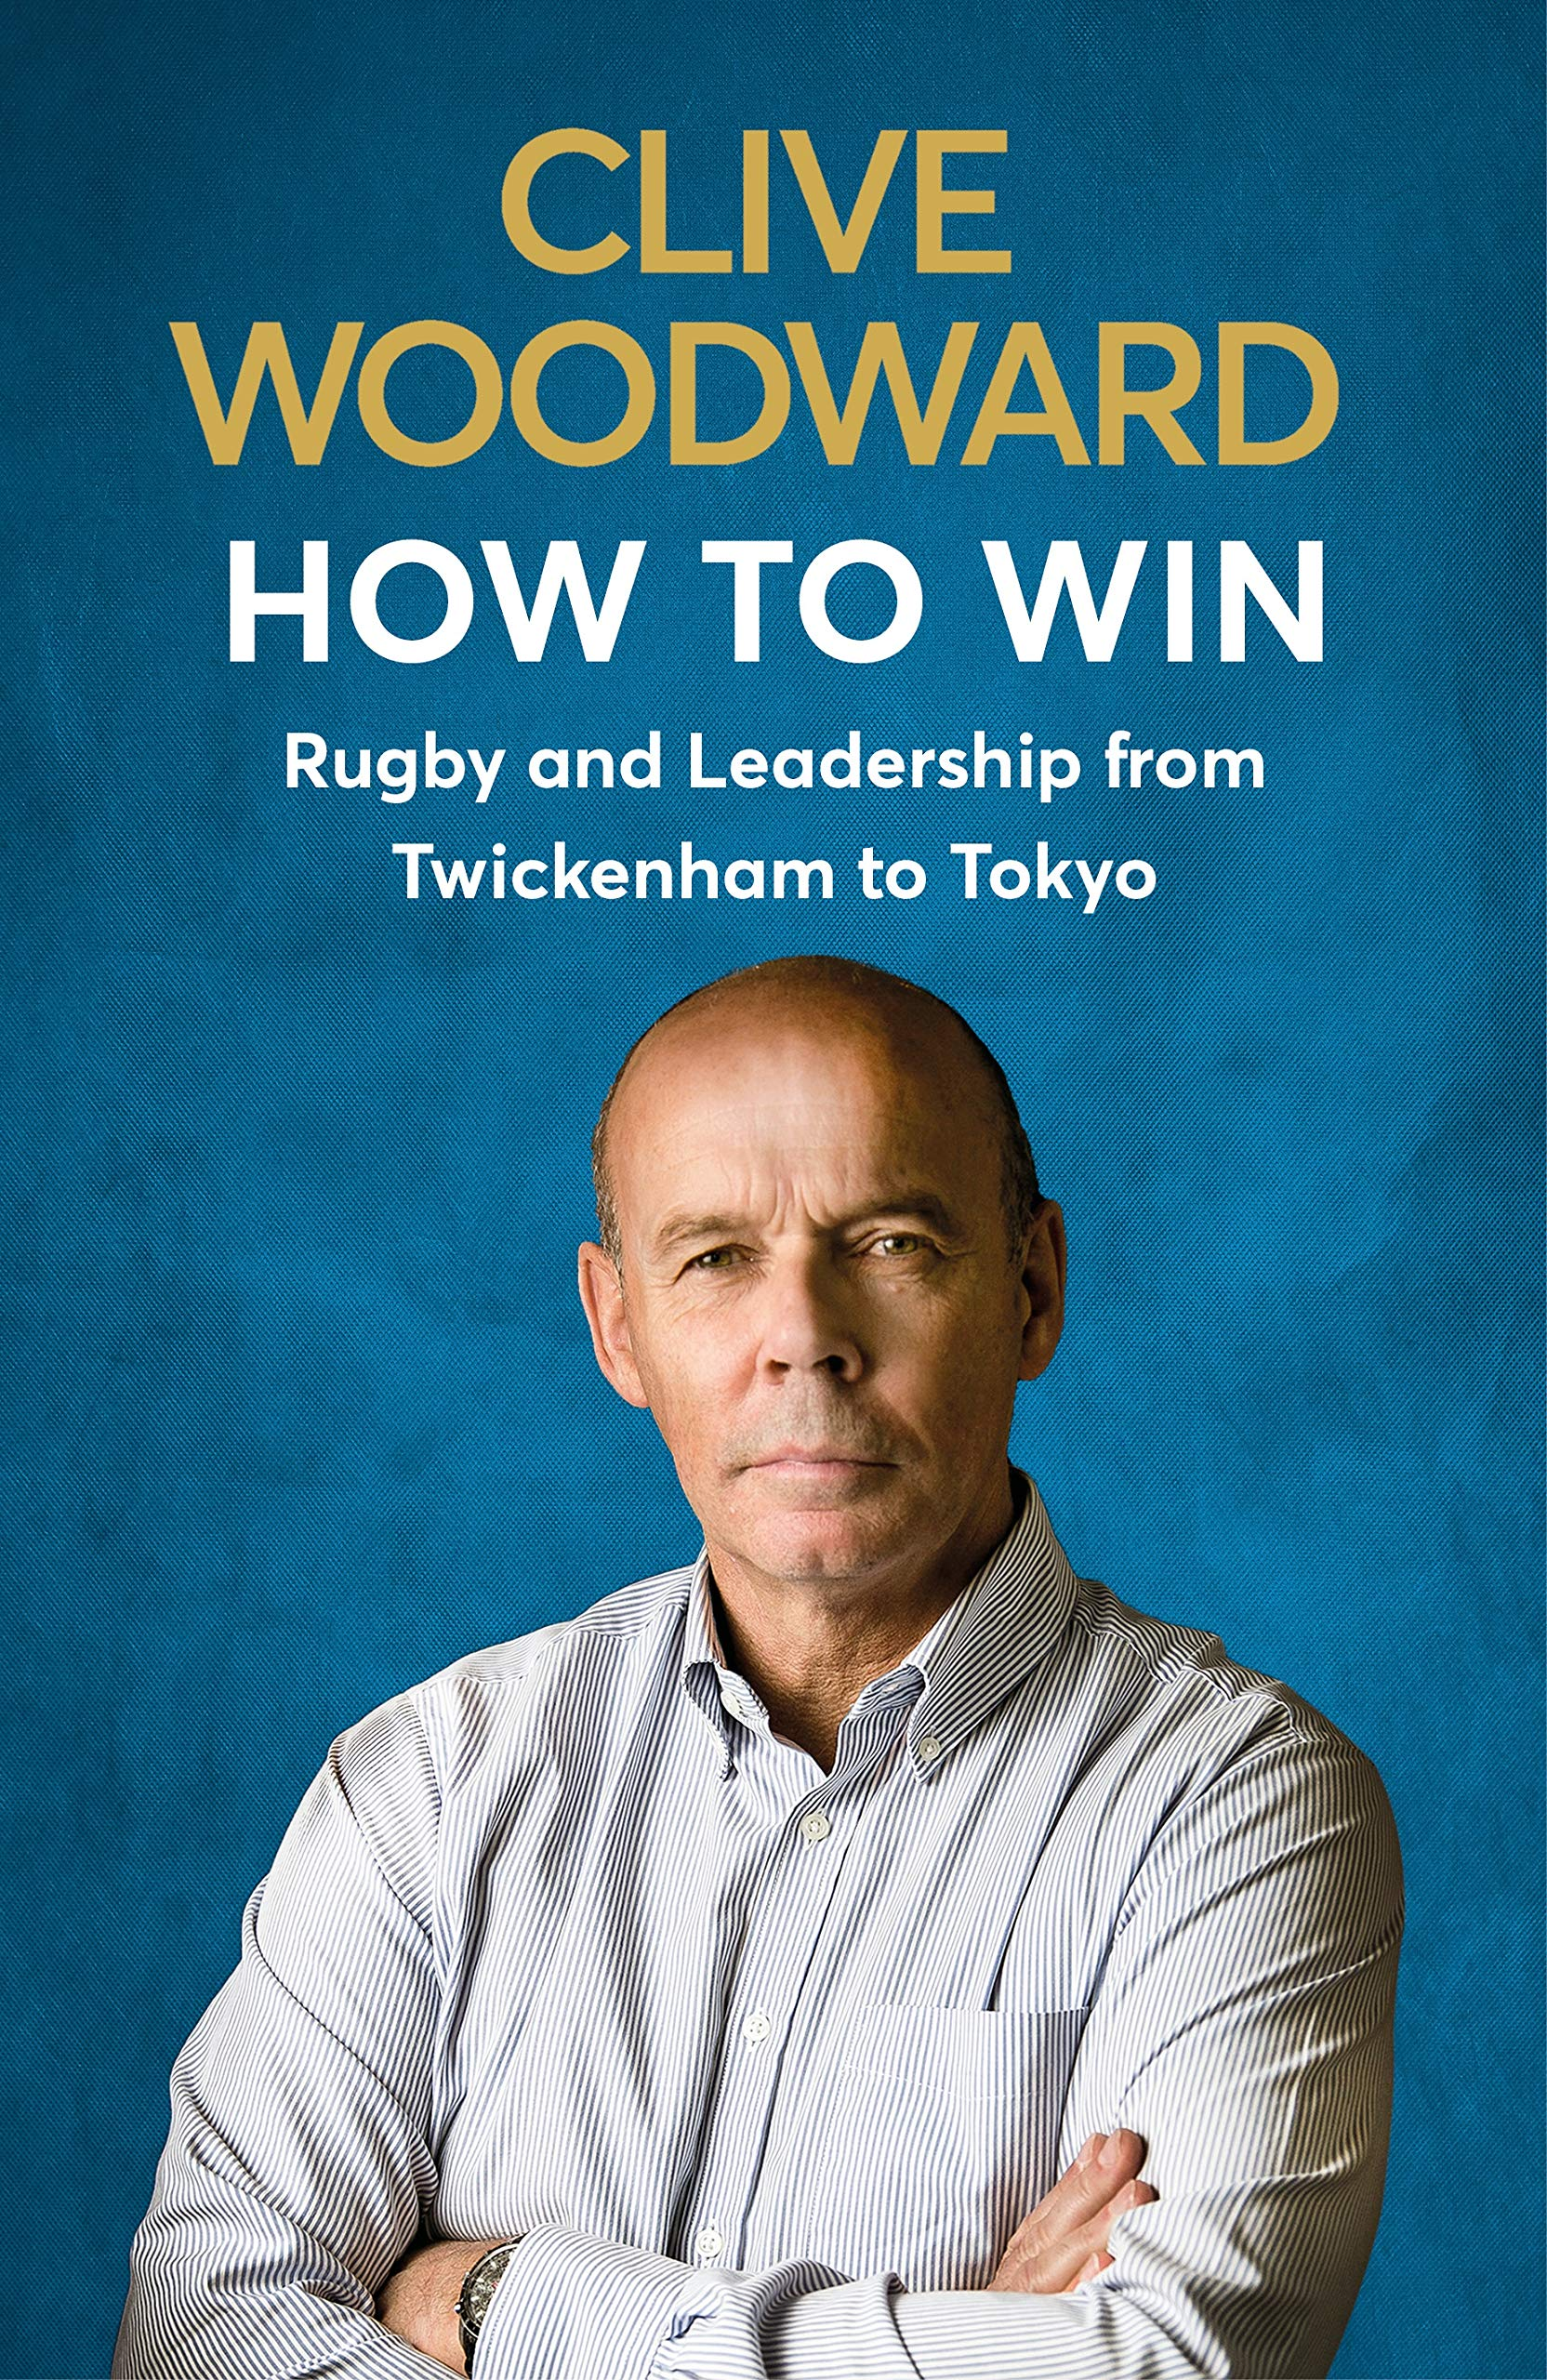 How to Win: Rugby and Leadership from Twickenham to Tokyo